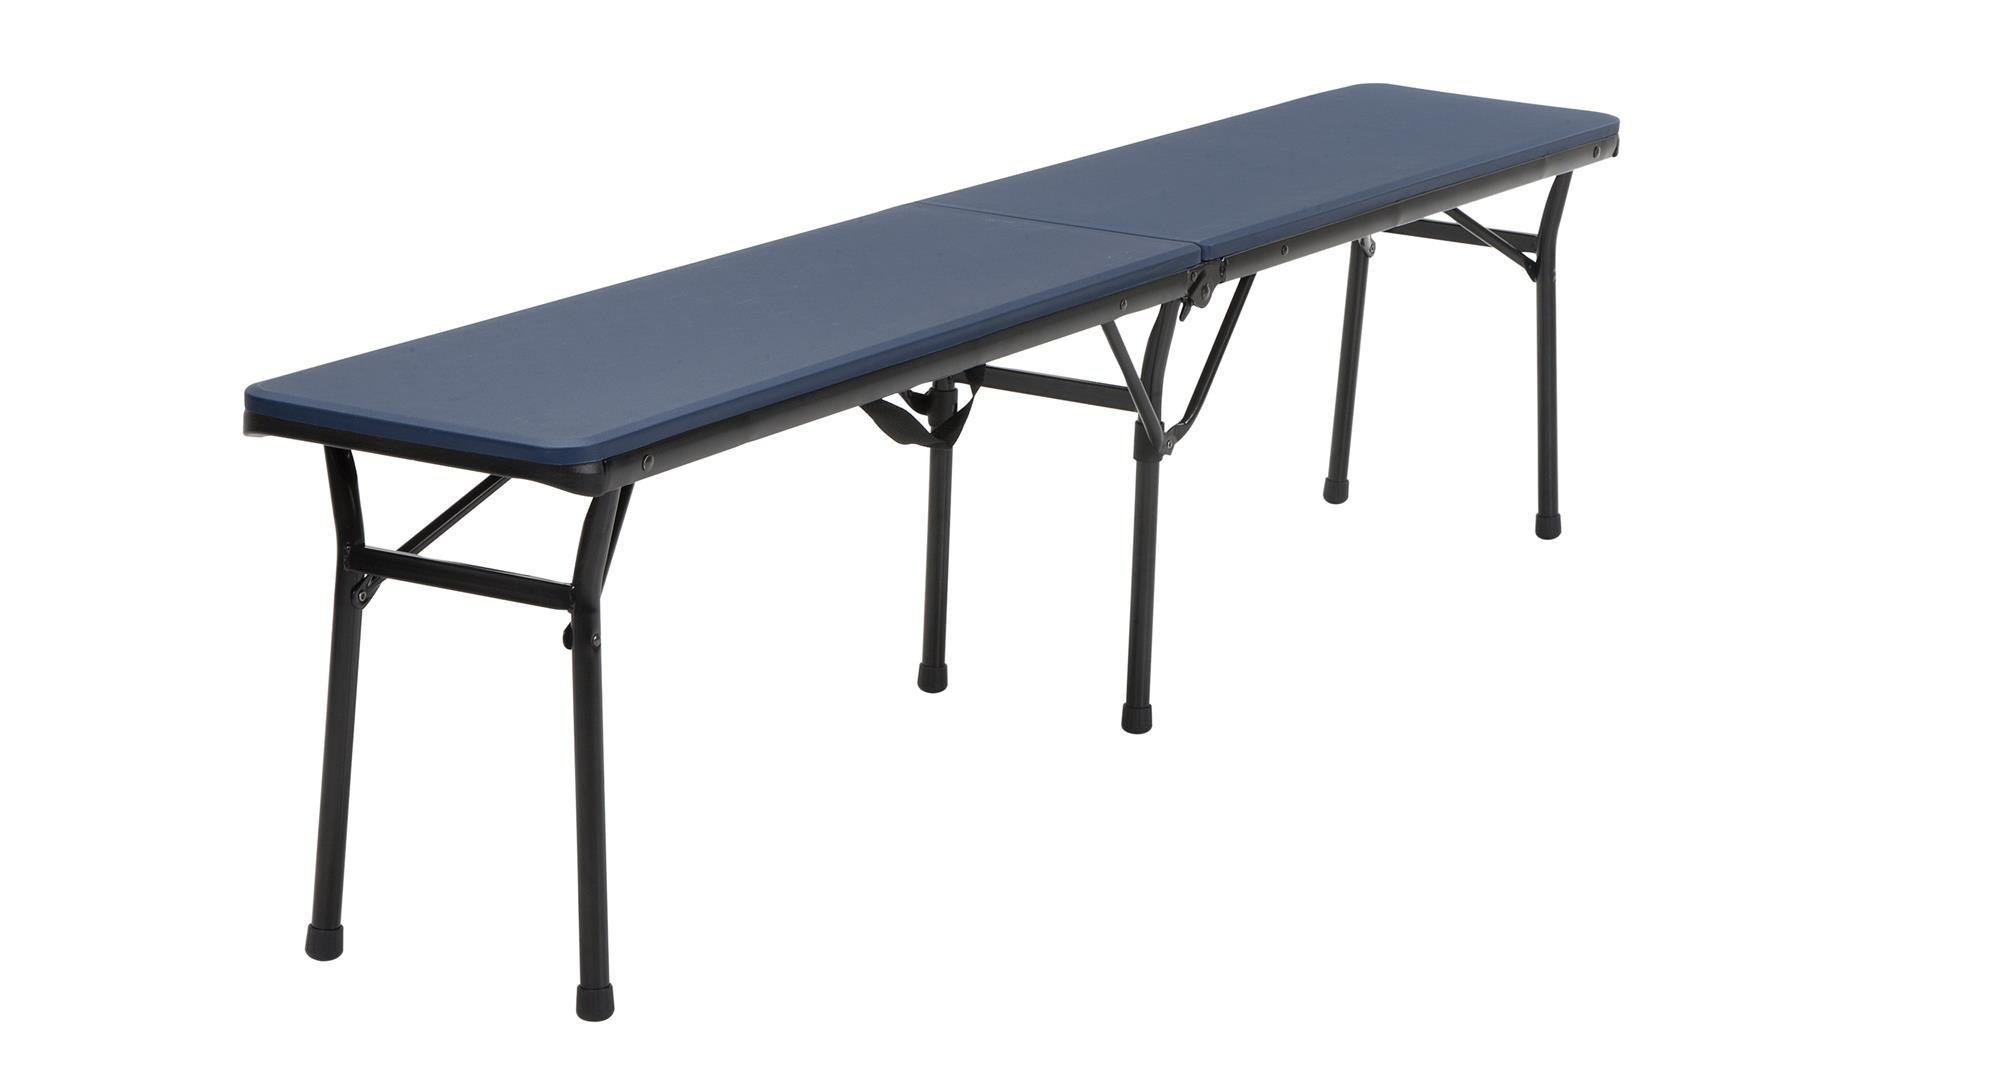 COSCO 6 ft. Indoor Outdoor Center Fold Tailgate Bench with Carrying Handle, Dark Blue Bench Top, Black Frame, 2-pack by Cosco Outdoor Living (Image #1)